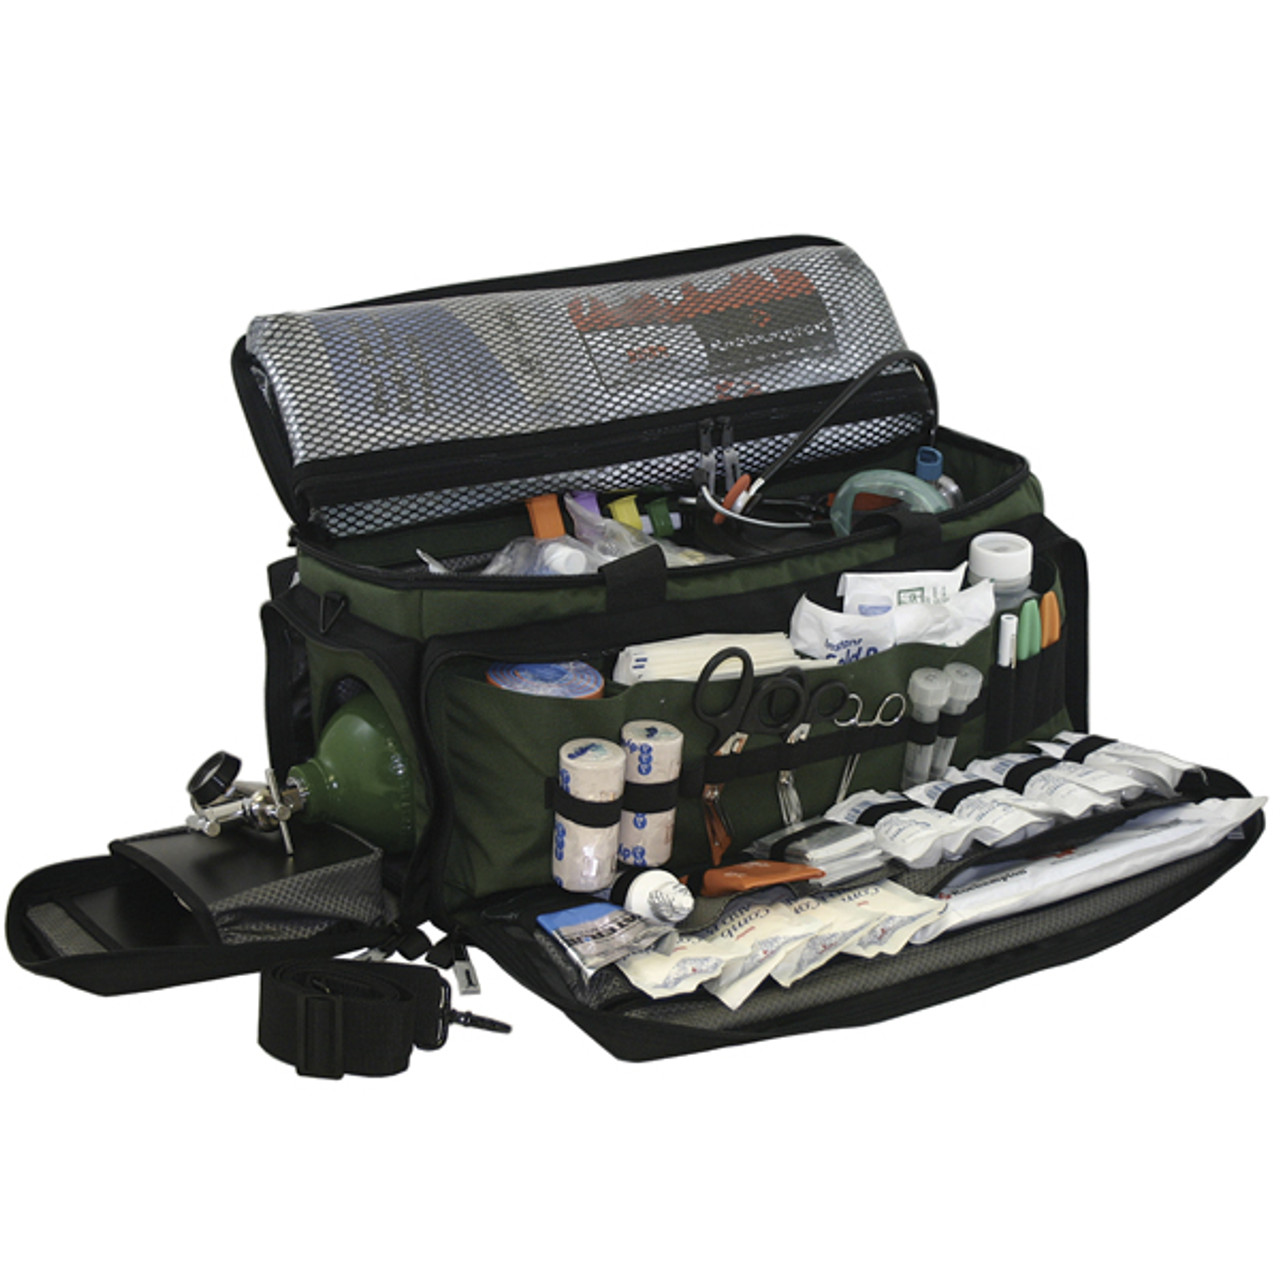 Breathsaver Plus Bag